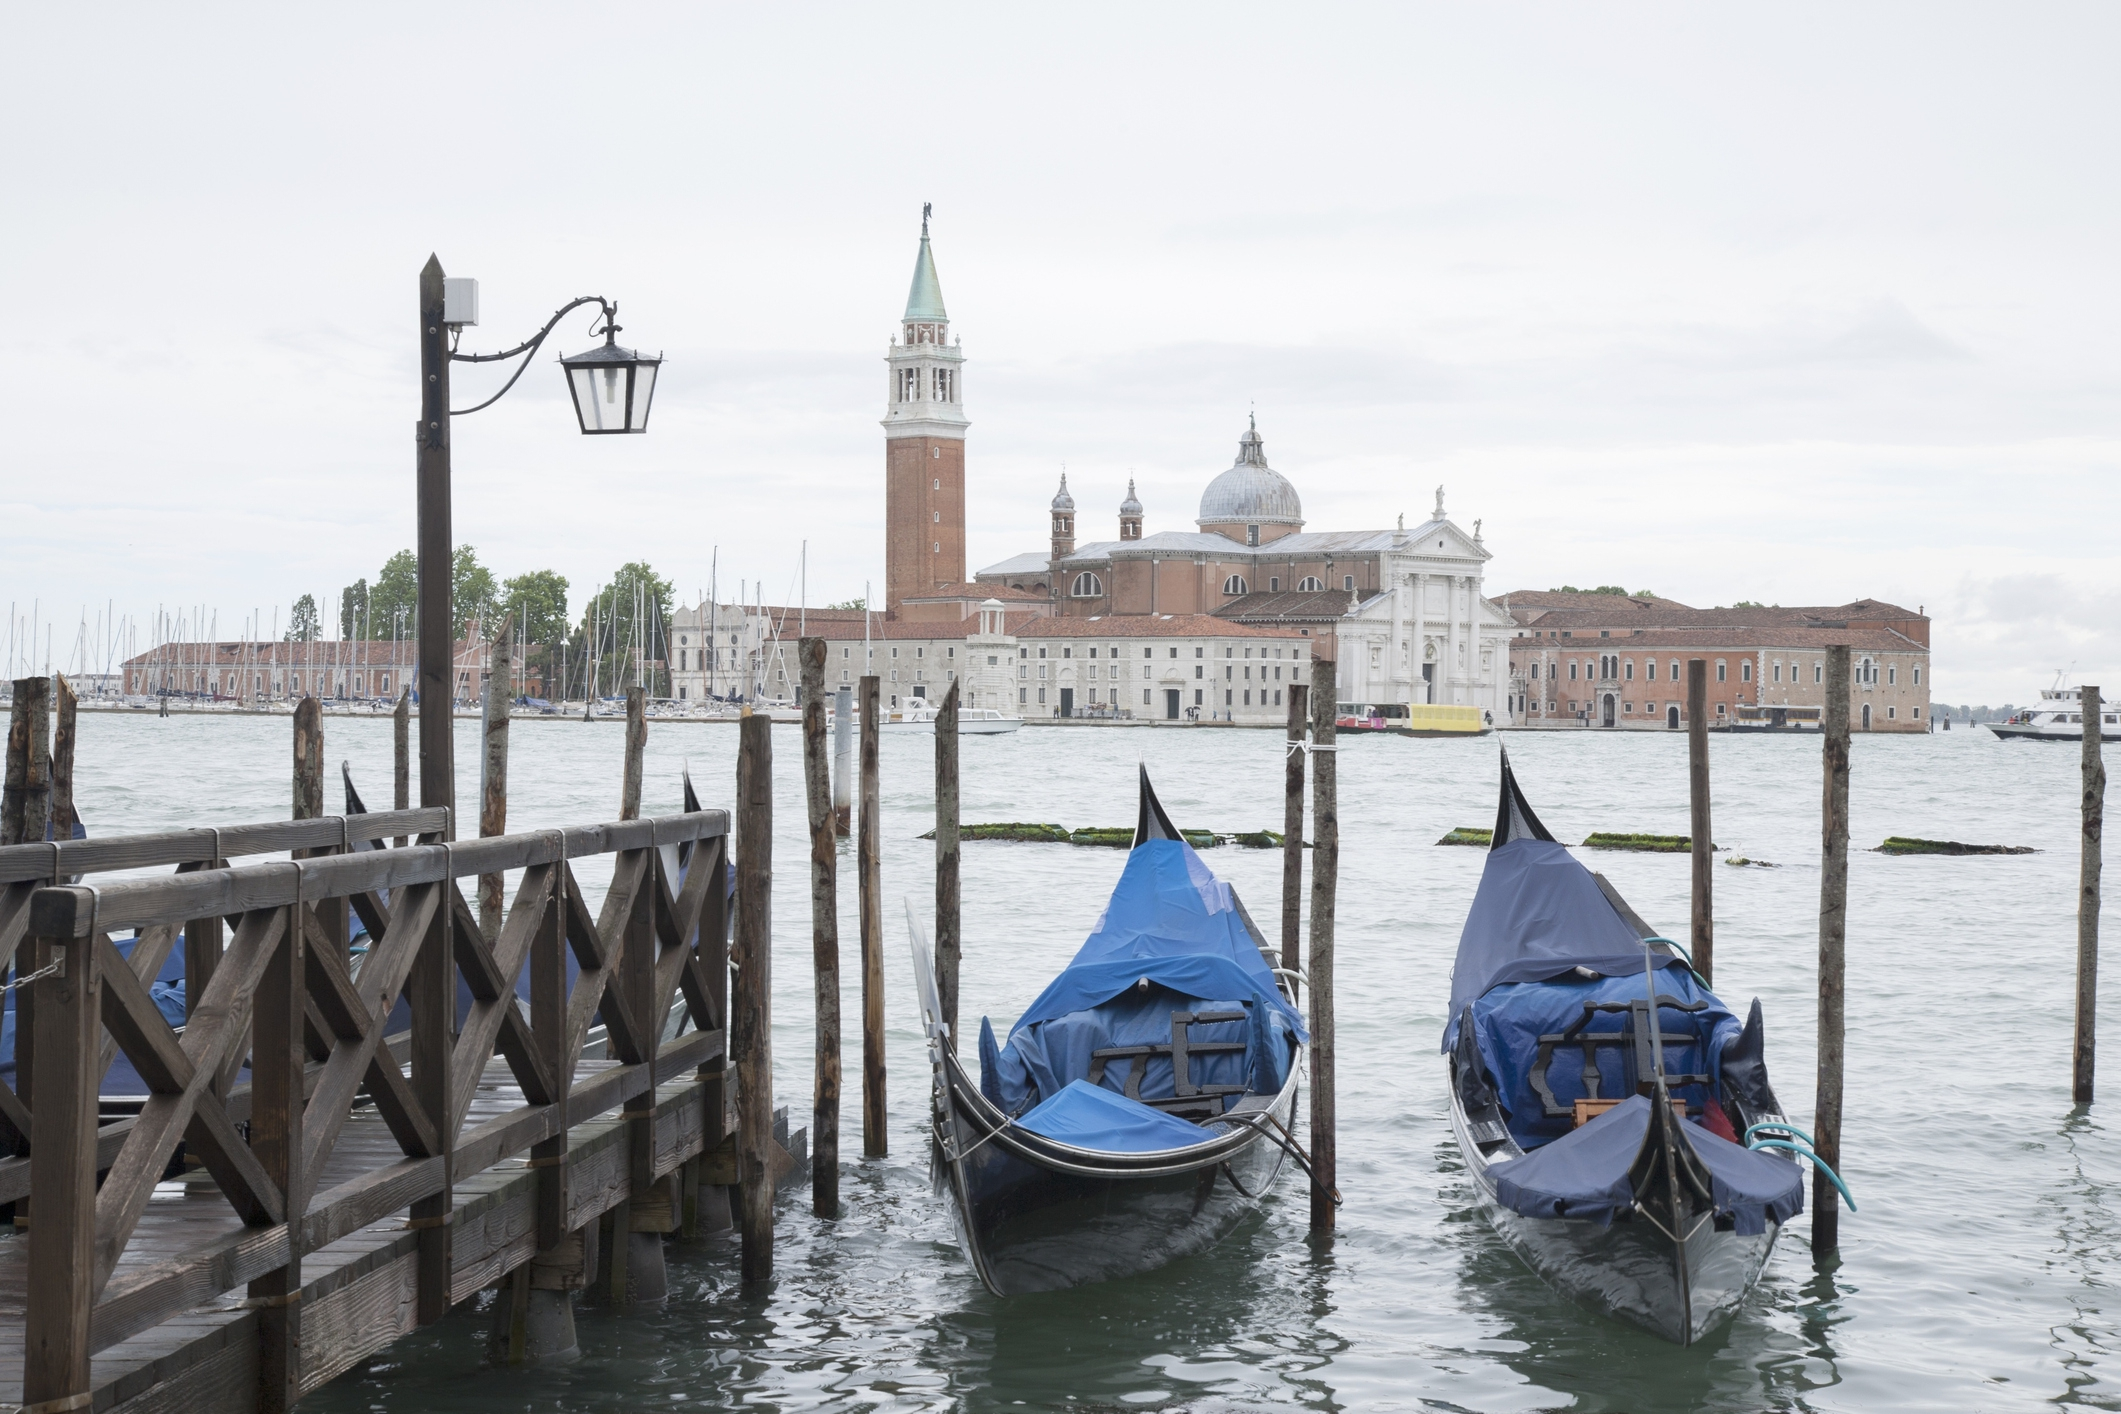 Italy, Venice, San Giorgio Maggiore Church and bell tower with gondolas in foreground